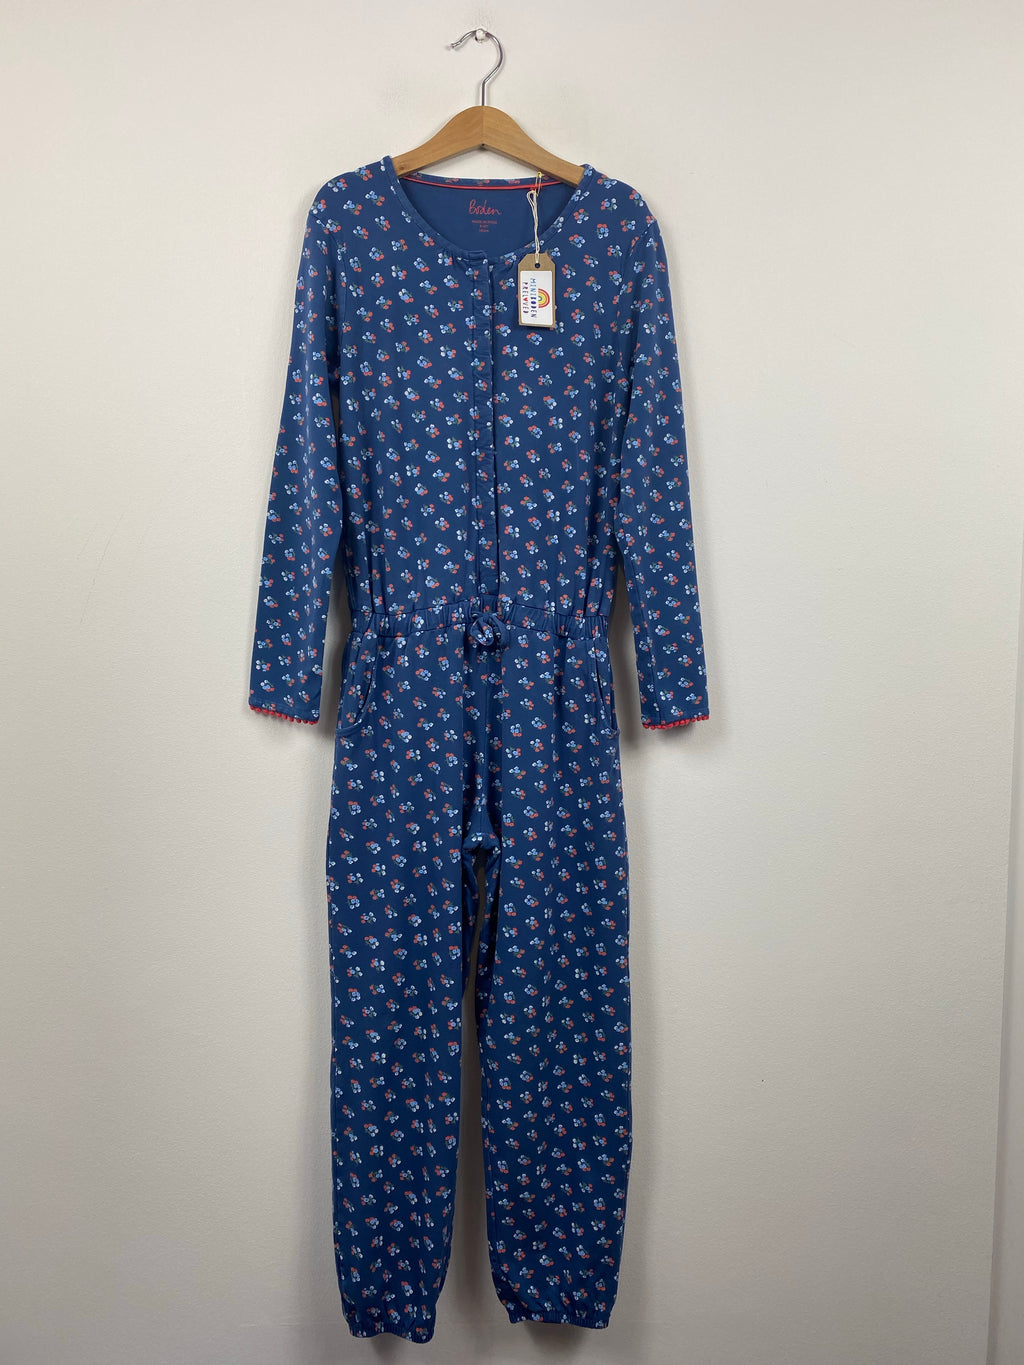 Blue Floral Jersey Playsuit (9-10 Years)